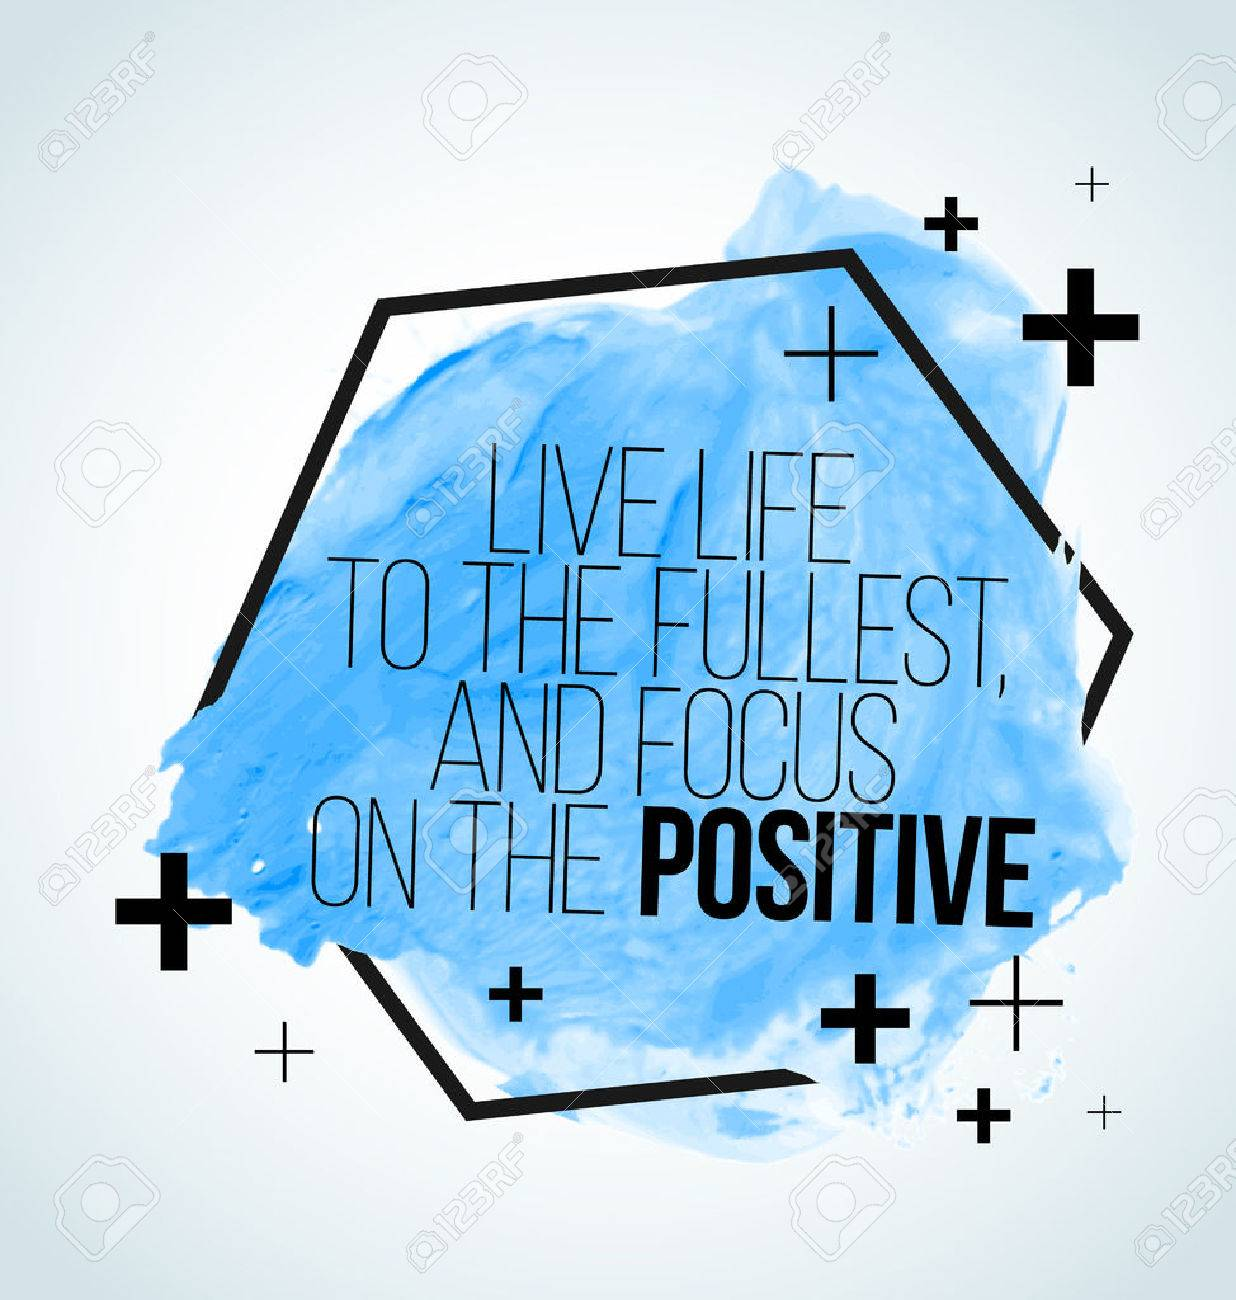 Modern inspirational quote on watercolor background - Live life to the fullest, and focus on the positive - 53653334